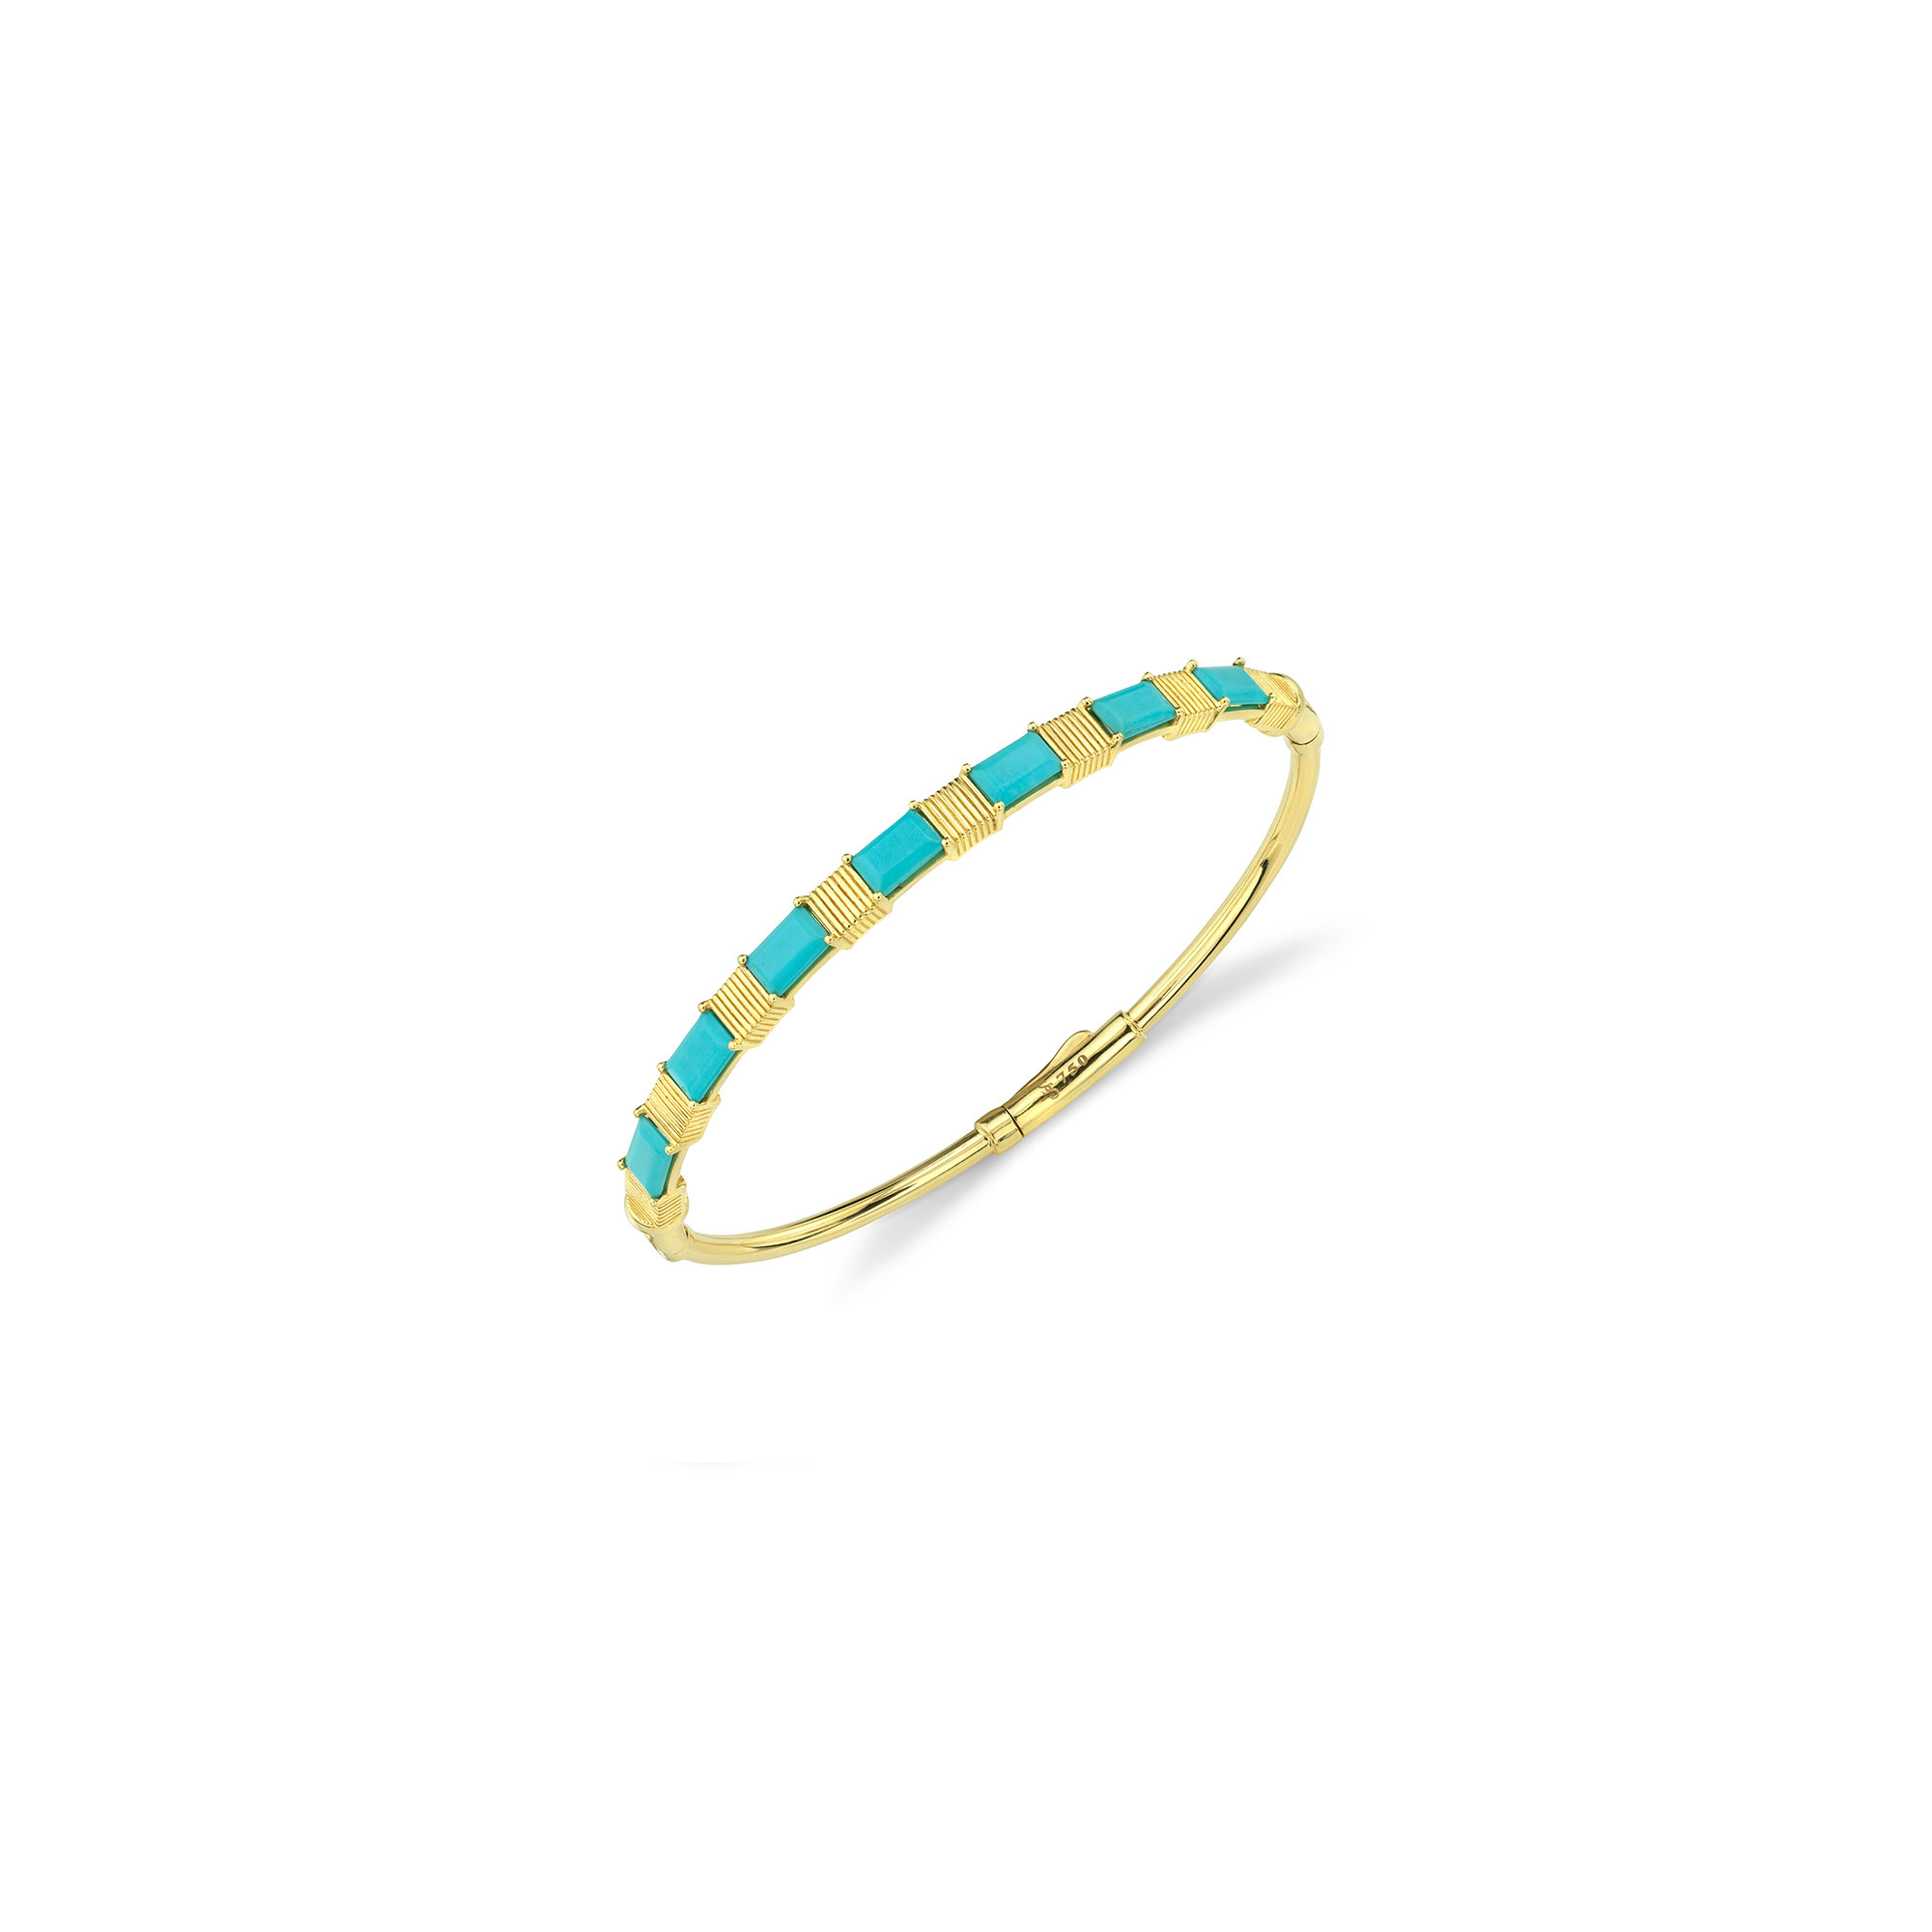 Sloane Street 18k Yellow Gold 2.90cts  Turquiose Gold Bangle with Stones B020F-TQ-Y-7